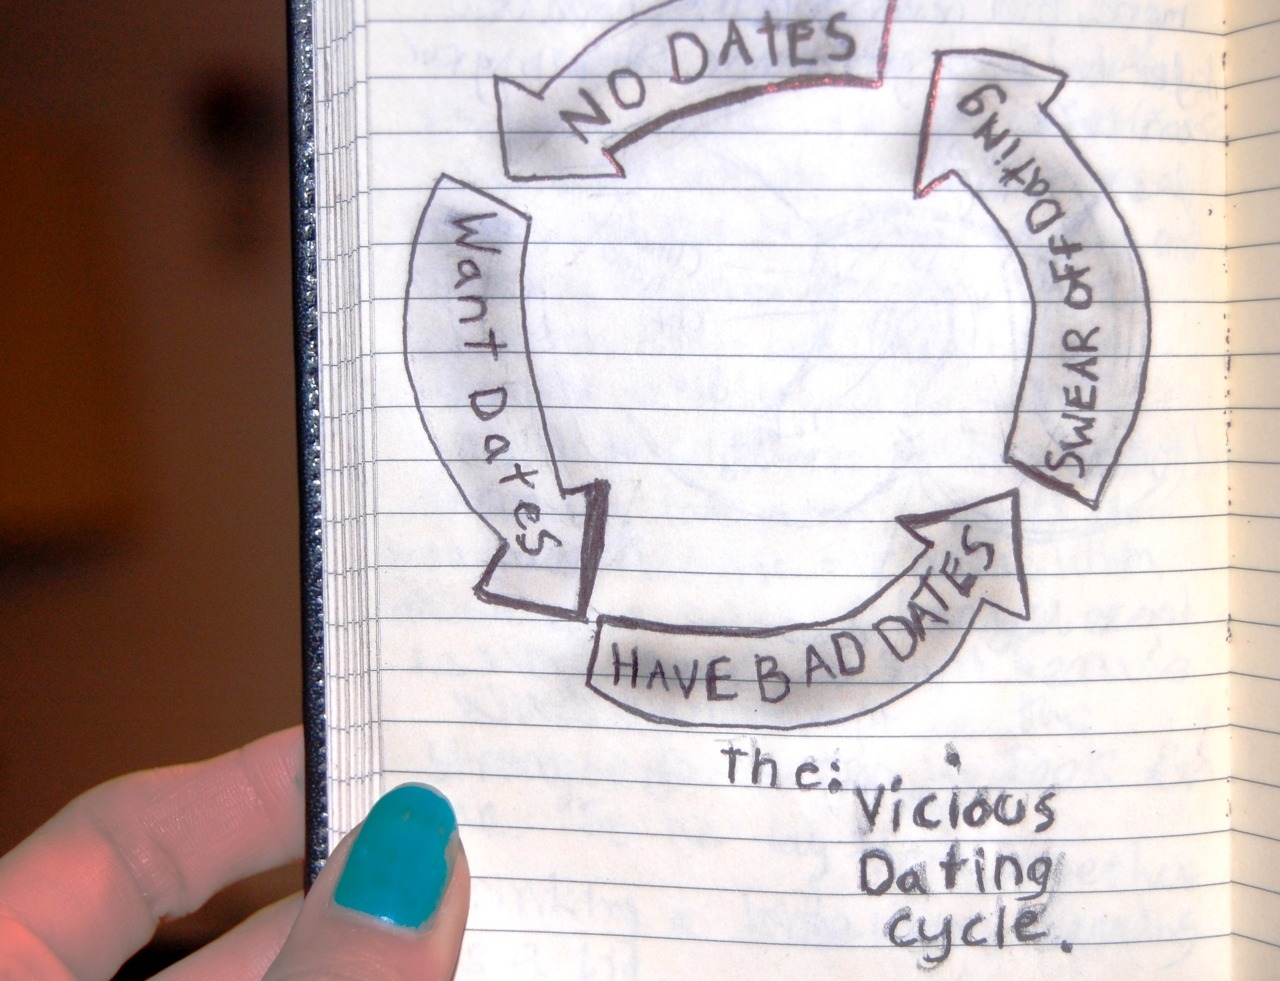 the vicious dating cycle. -jessicalikesphotos